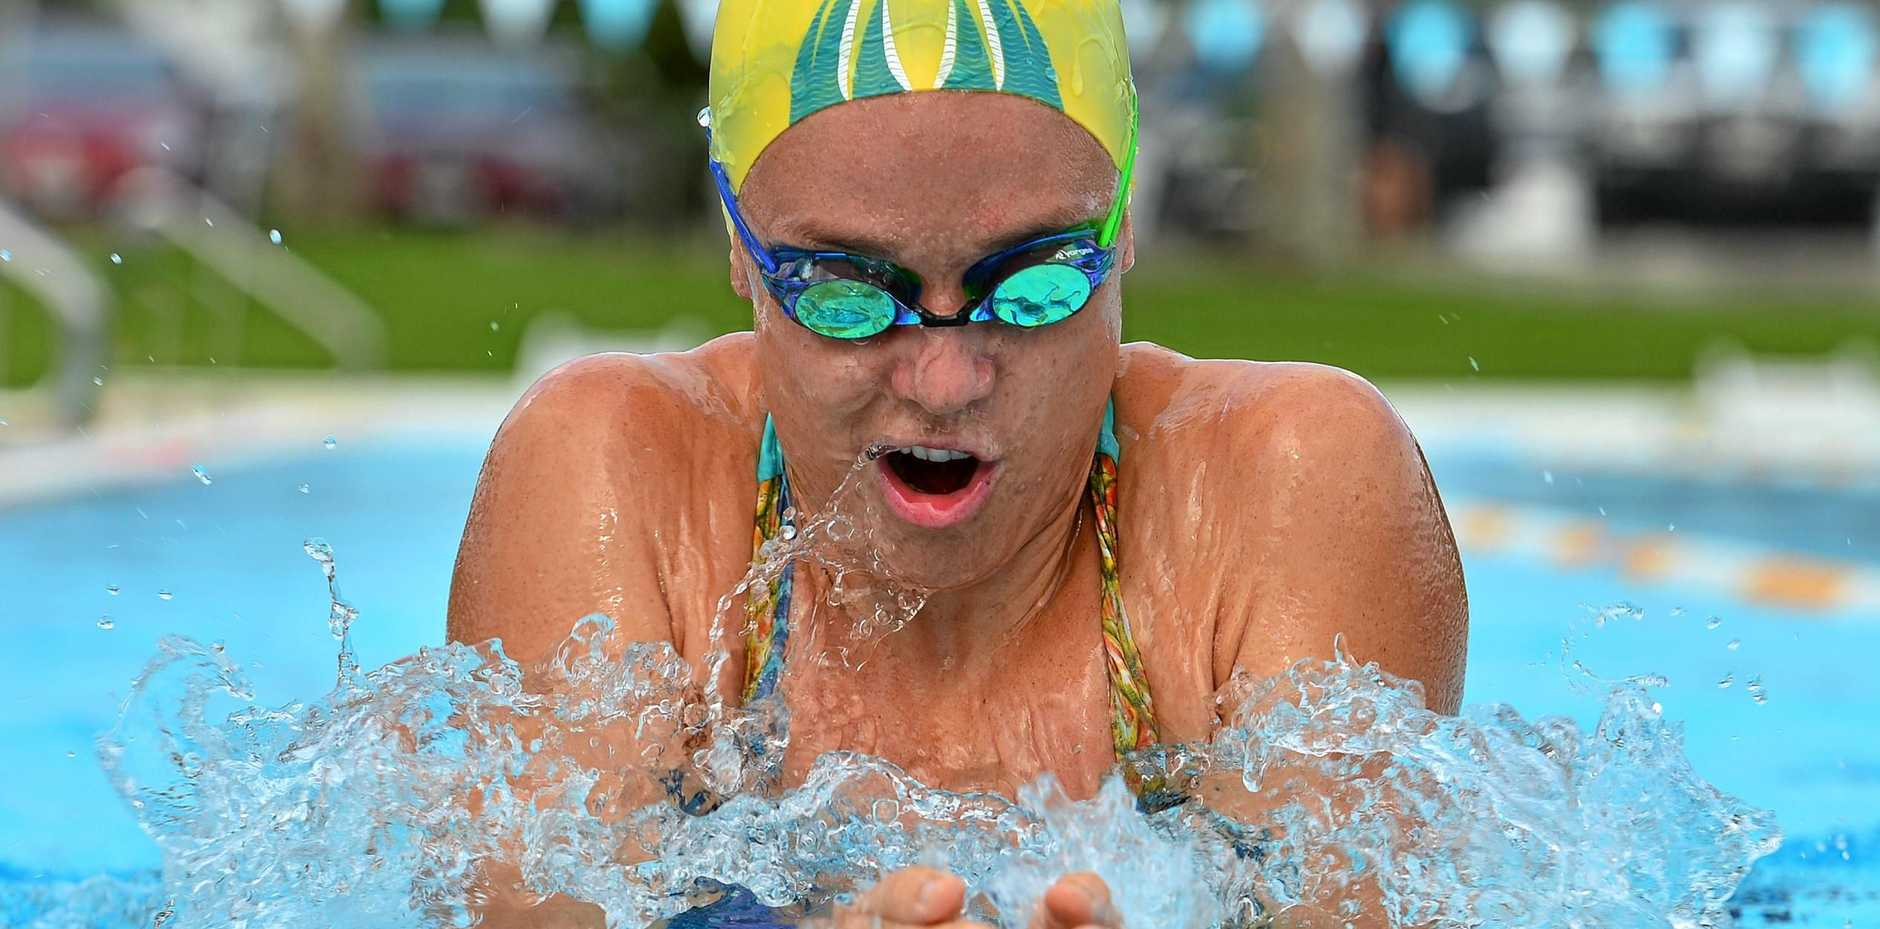 DIVE IN: Tessa Wallace will compete in the 200m breaststroke during what is her third Commonwealth Games appearance today on the Gold Coast.